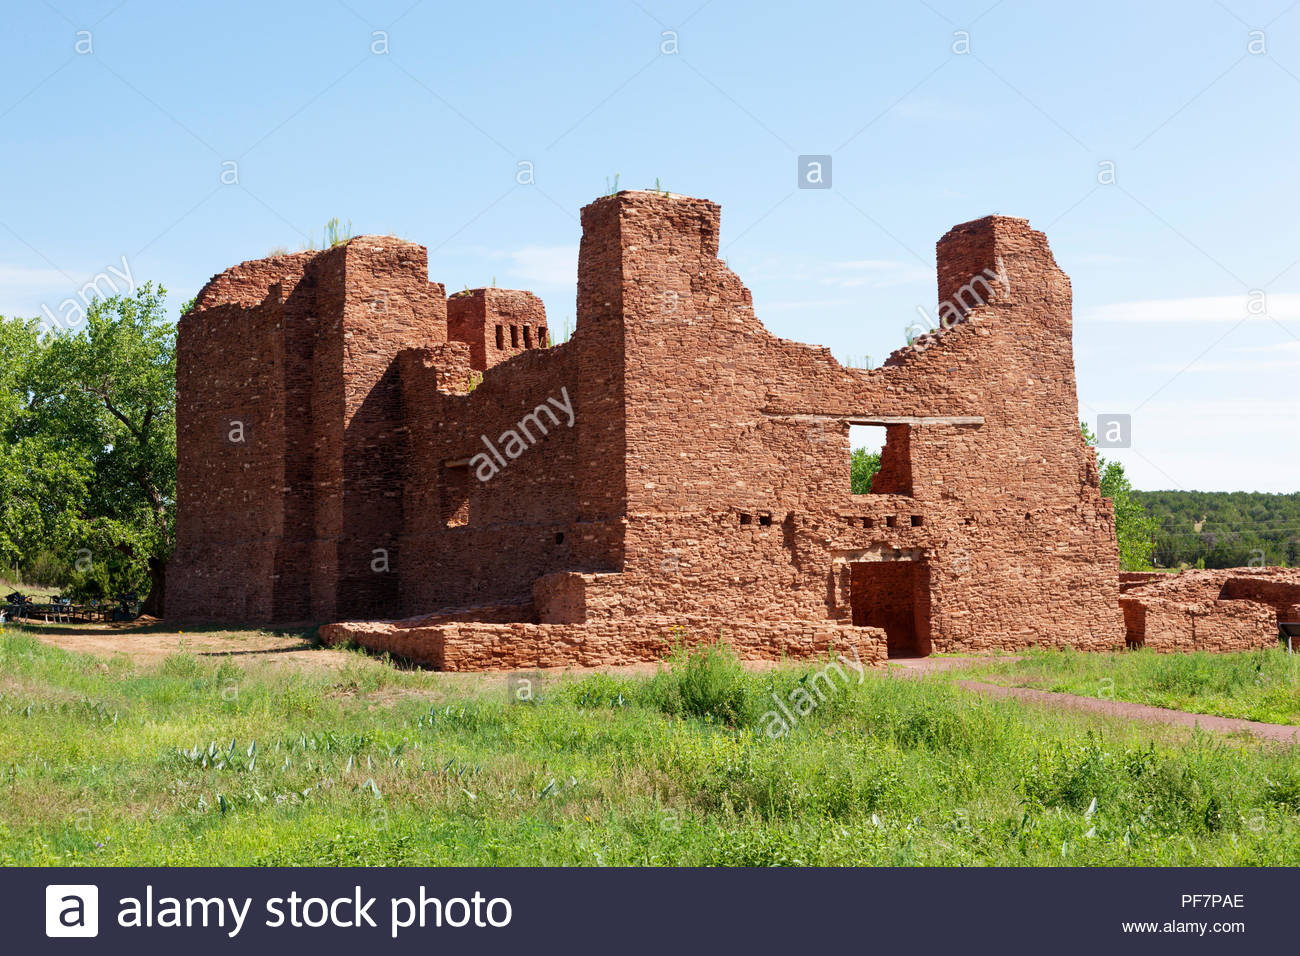 nuestra-senora-de-la-purisima-concepcion-de-quarai-also-cuarac-quarai-ruins-salinas-pueblo-missions-national-monument-church-in-new-mexico-usa-PF7PAE.jpg